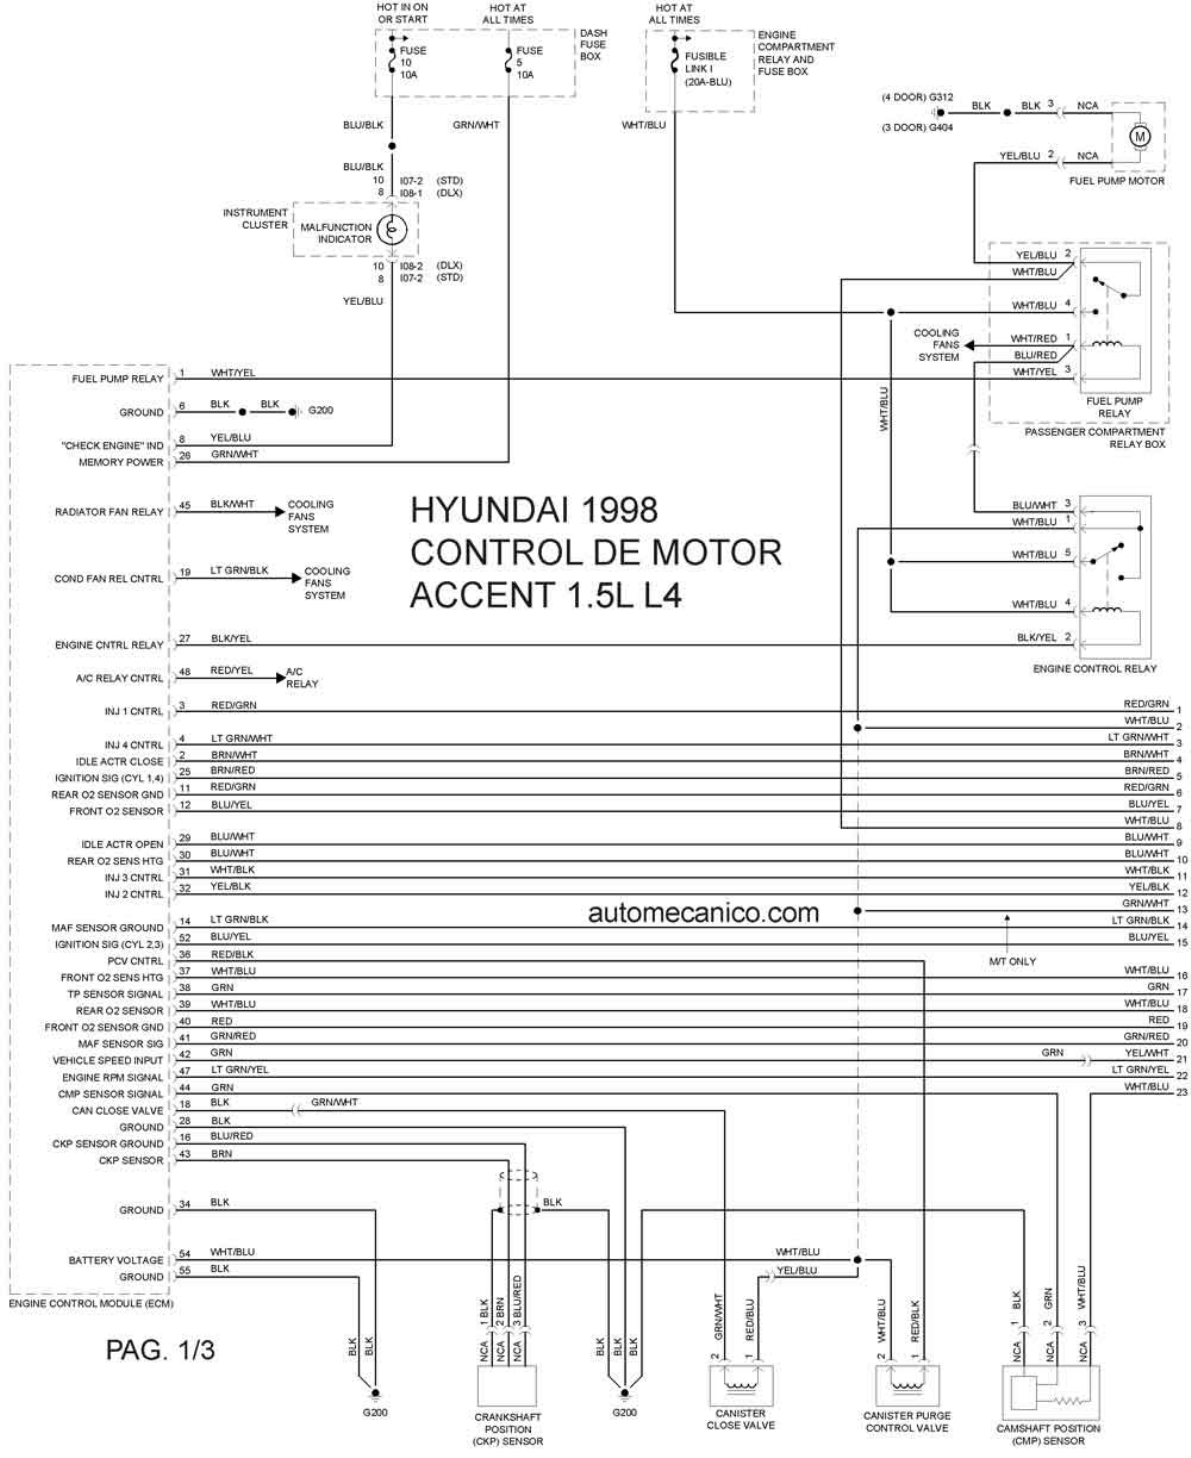 bg1 hyundai accent 1998 misc document wiring diagram pdf hyundai accent wiring diagram pdf at aneh.co